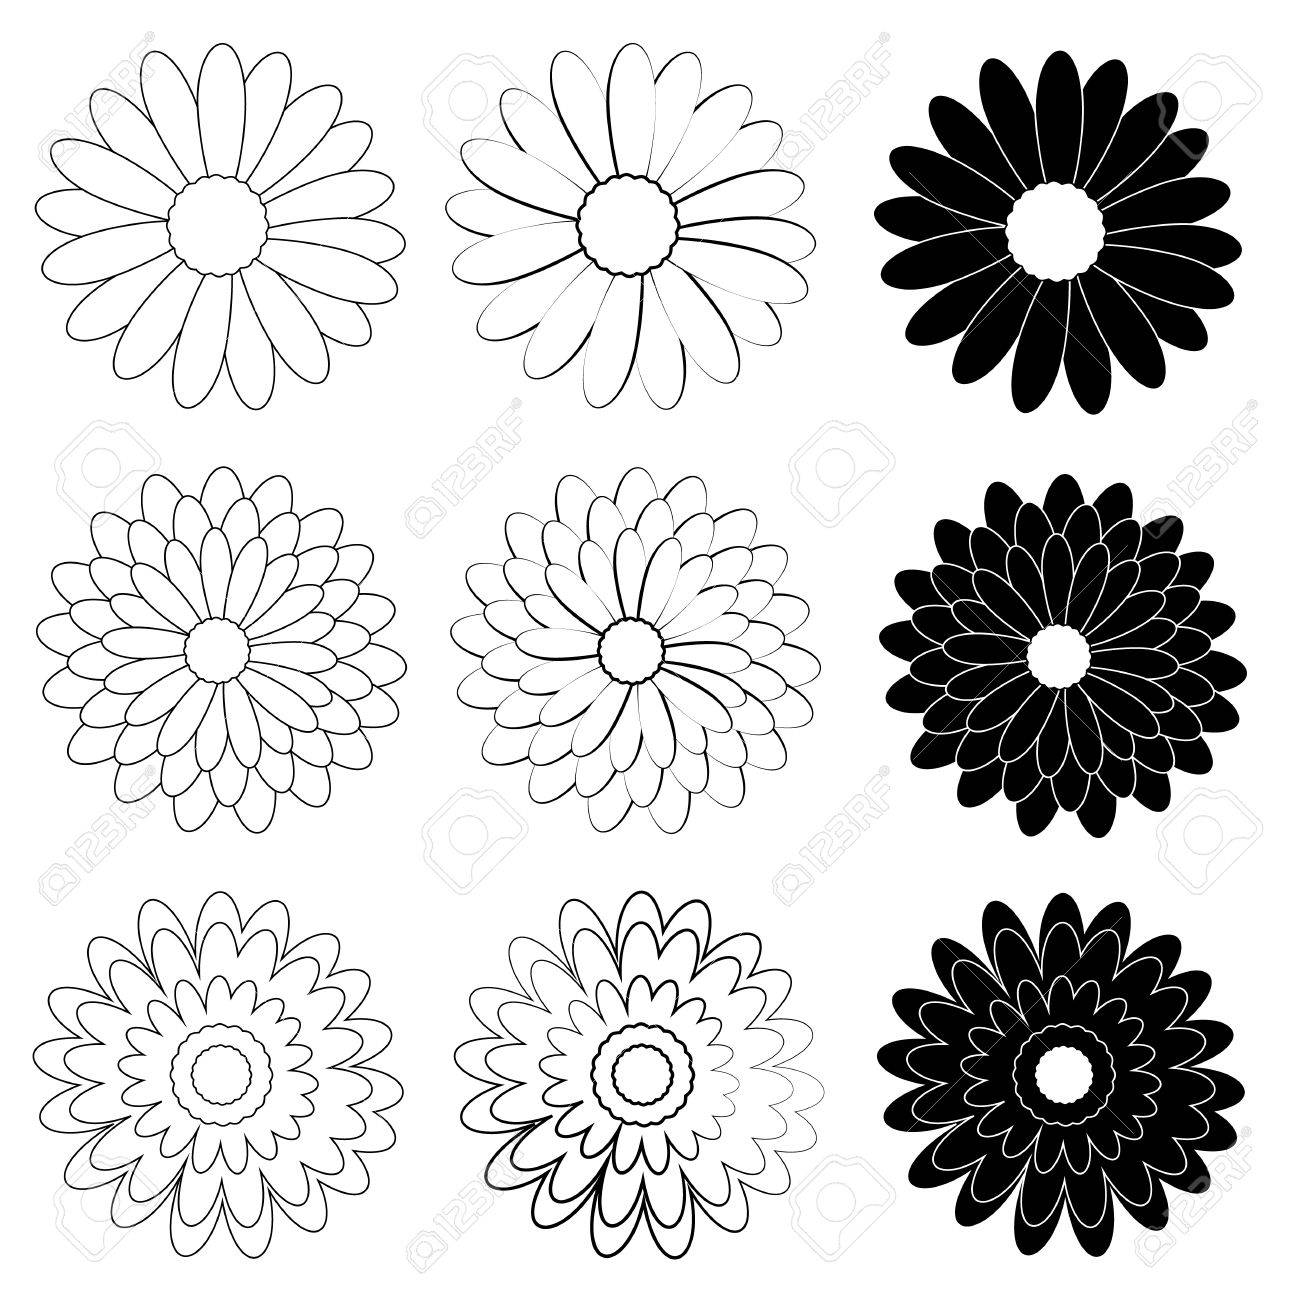 Black and White Daisy flower on white background.